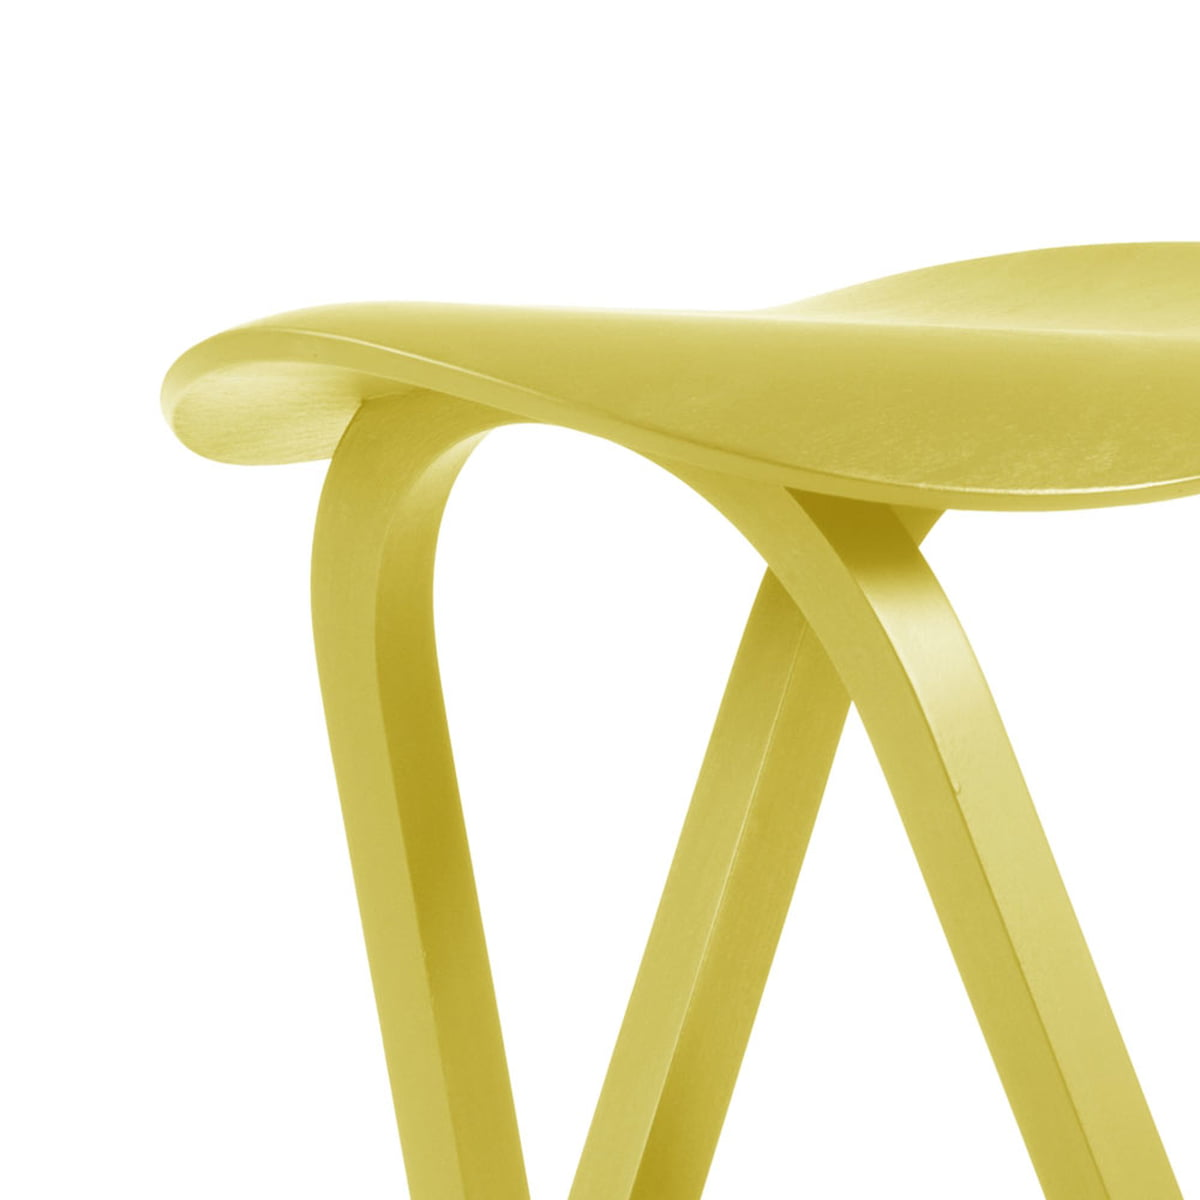 404 bar stool by thonet connox shop for Thonet barhocker